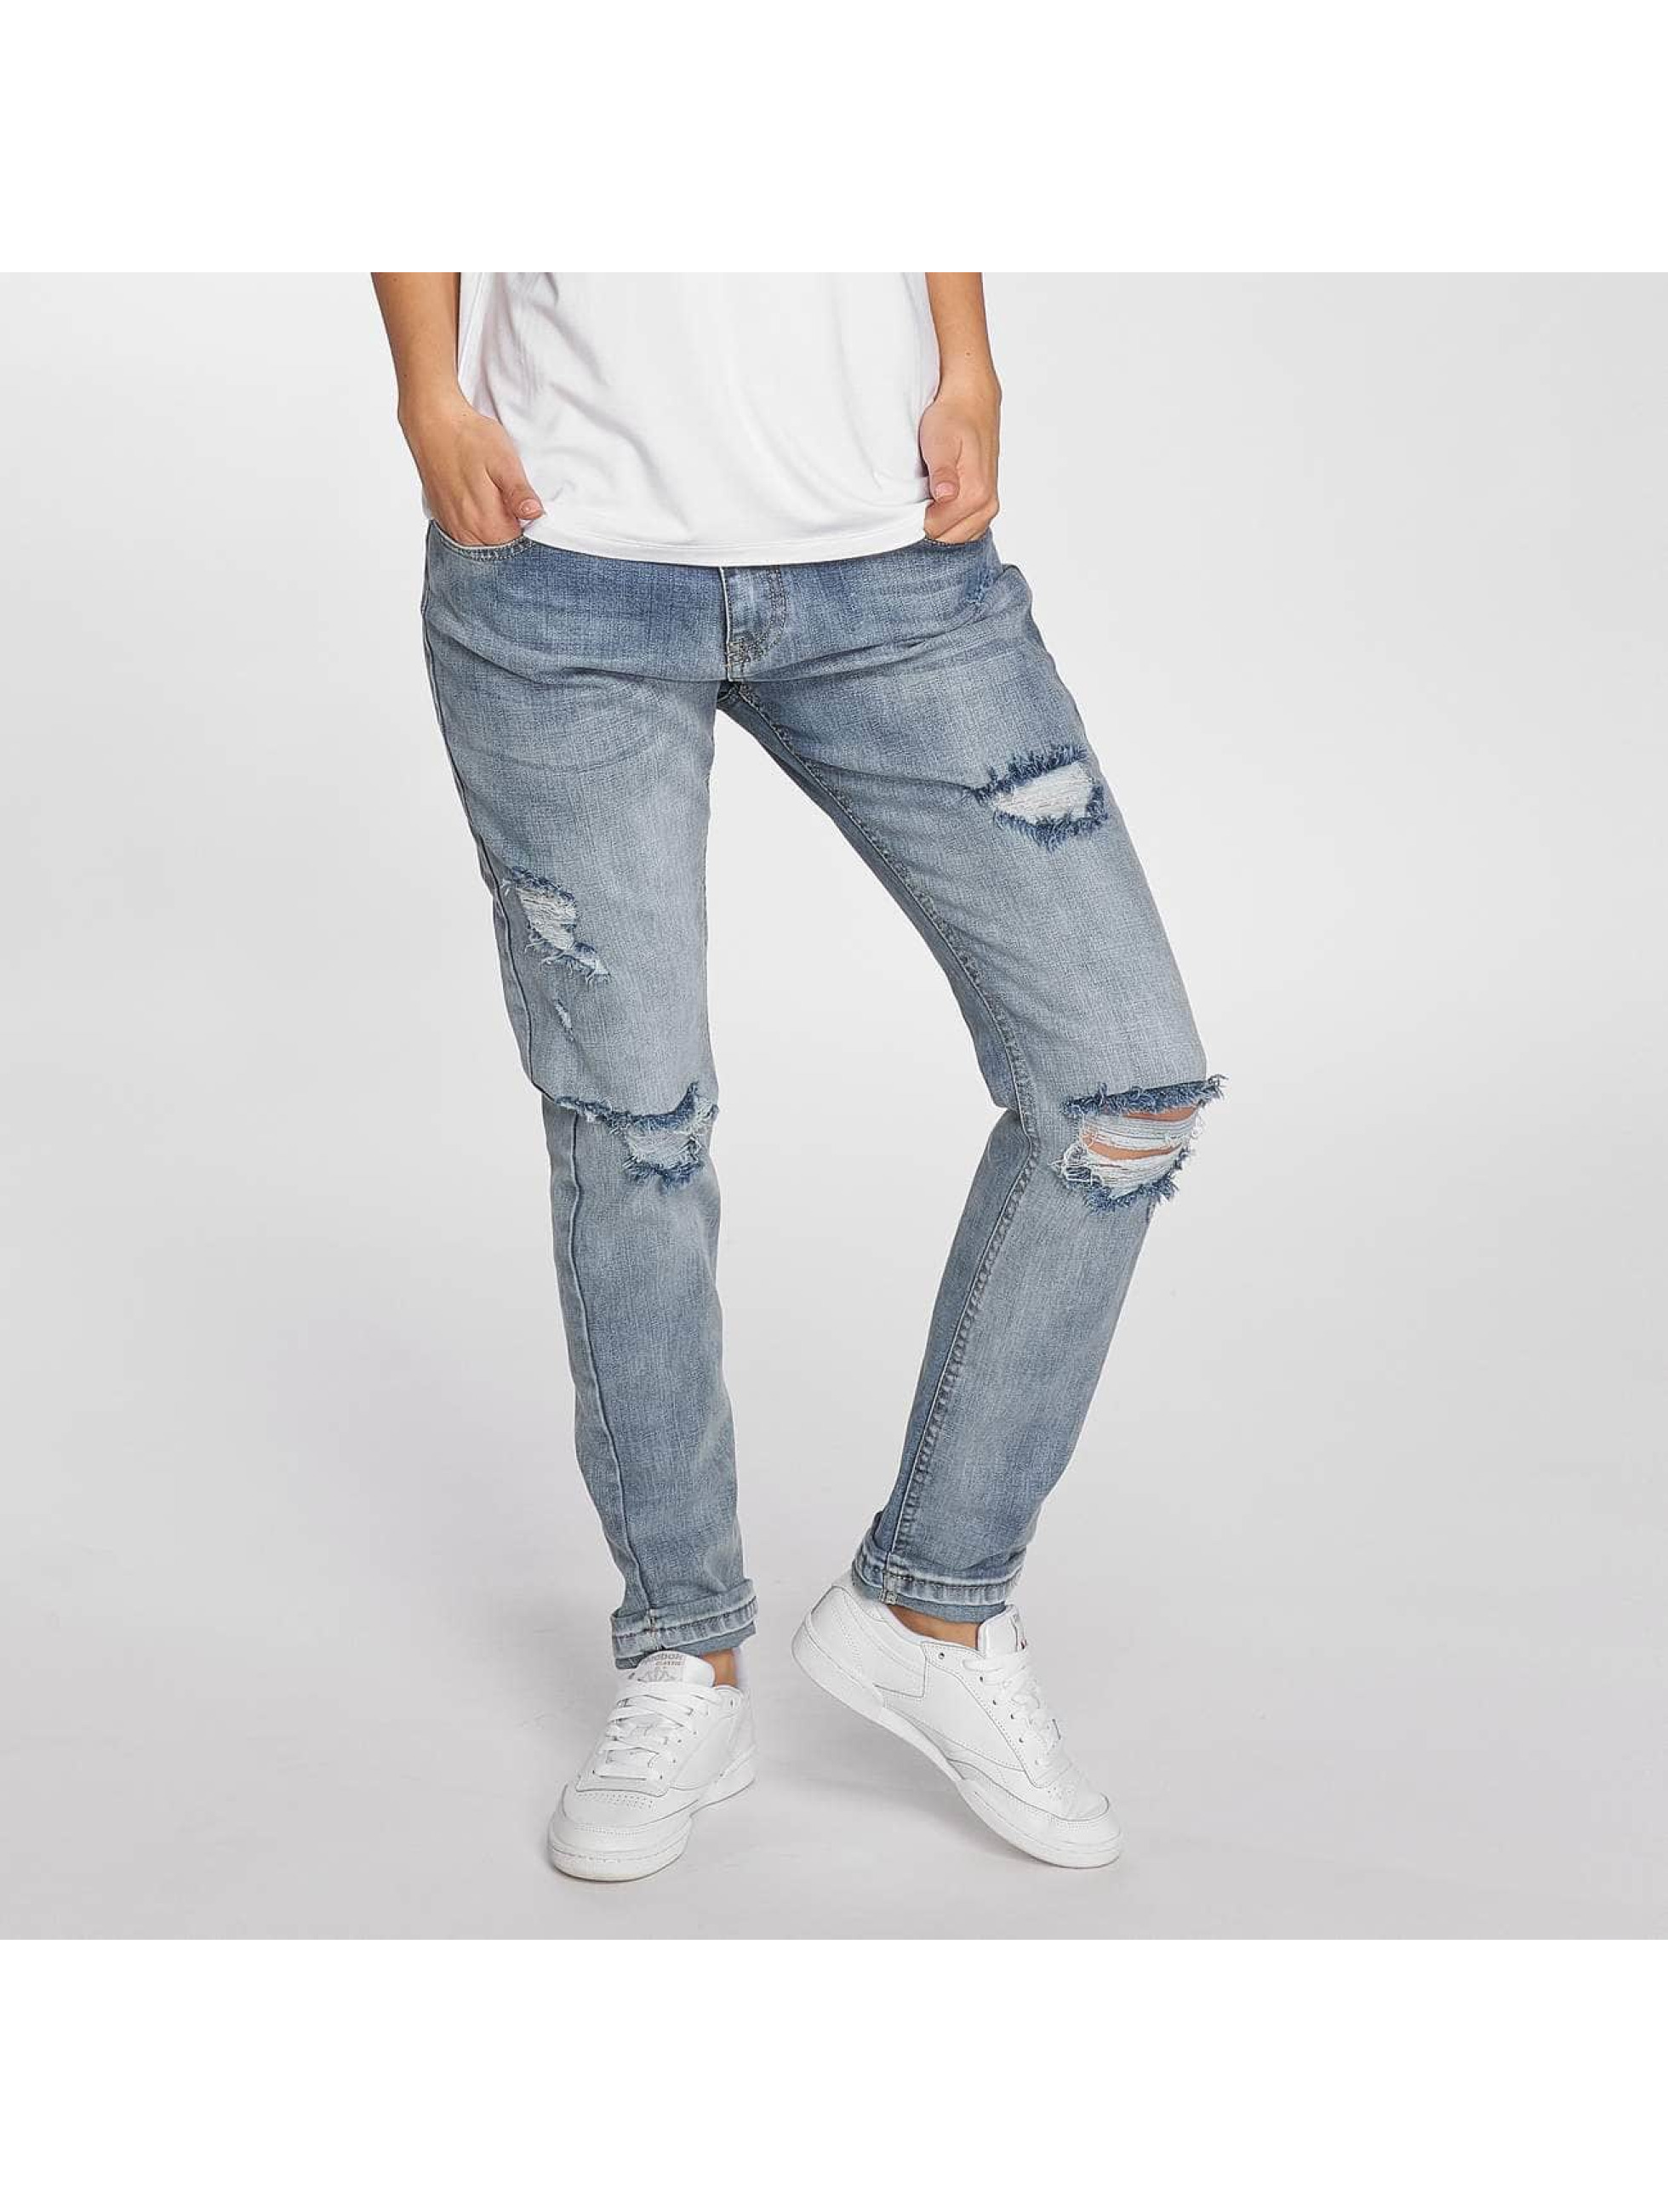 Just Rhyse / Boyfriend Jeans Boyfriend in blue L